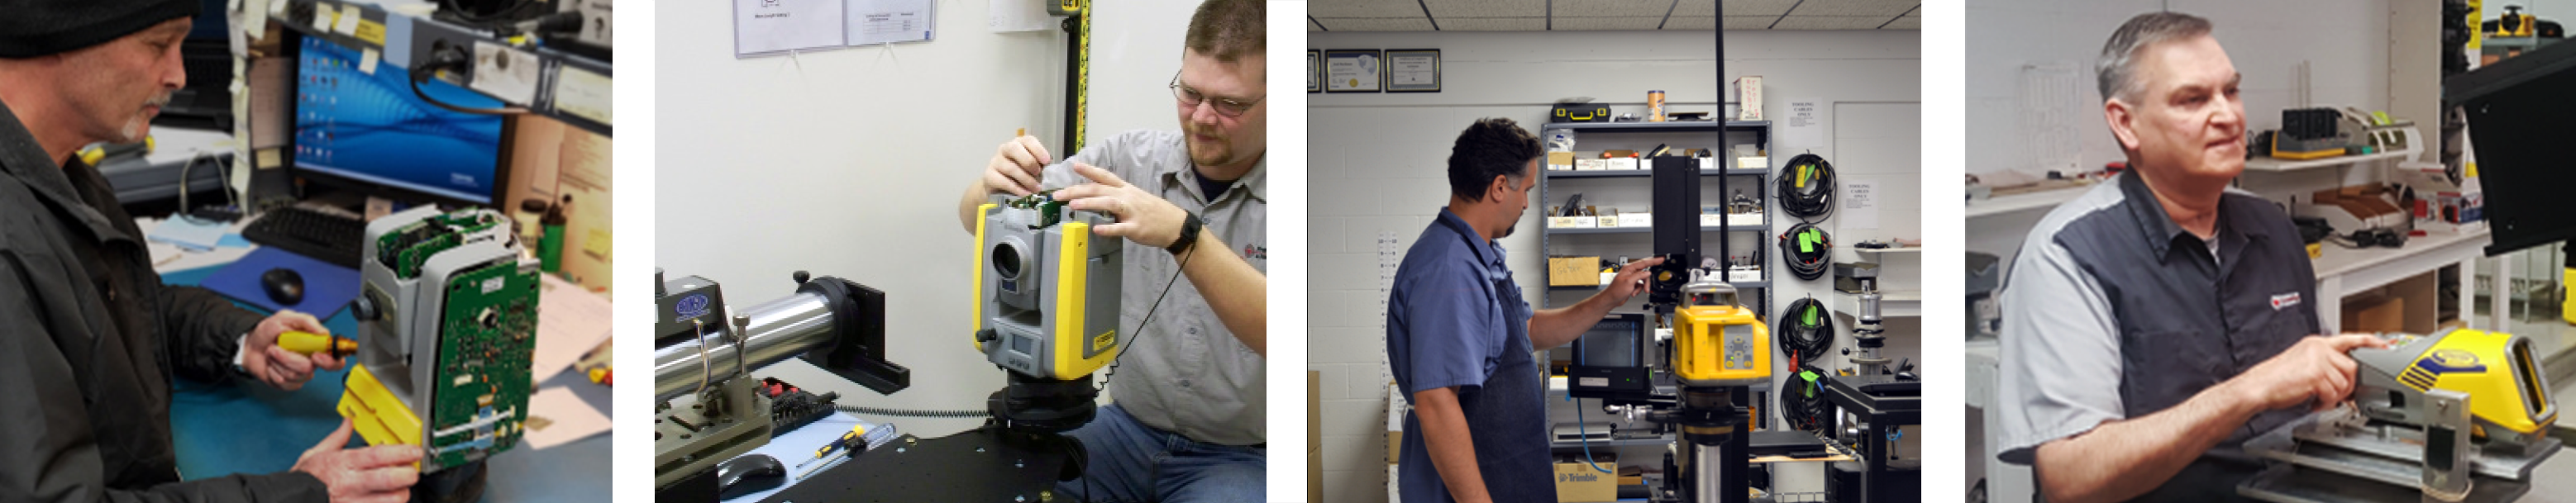 Service Repair Centers for Construction, Surveying, and GIS/Mapping Equipment